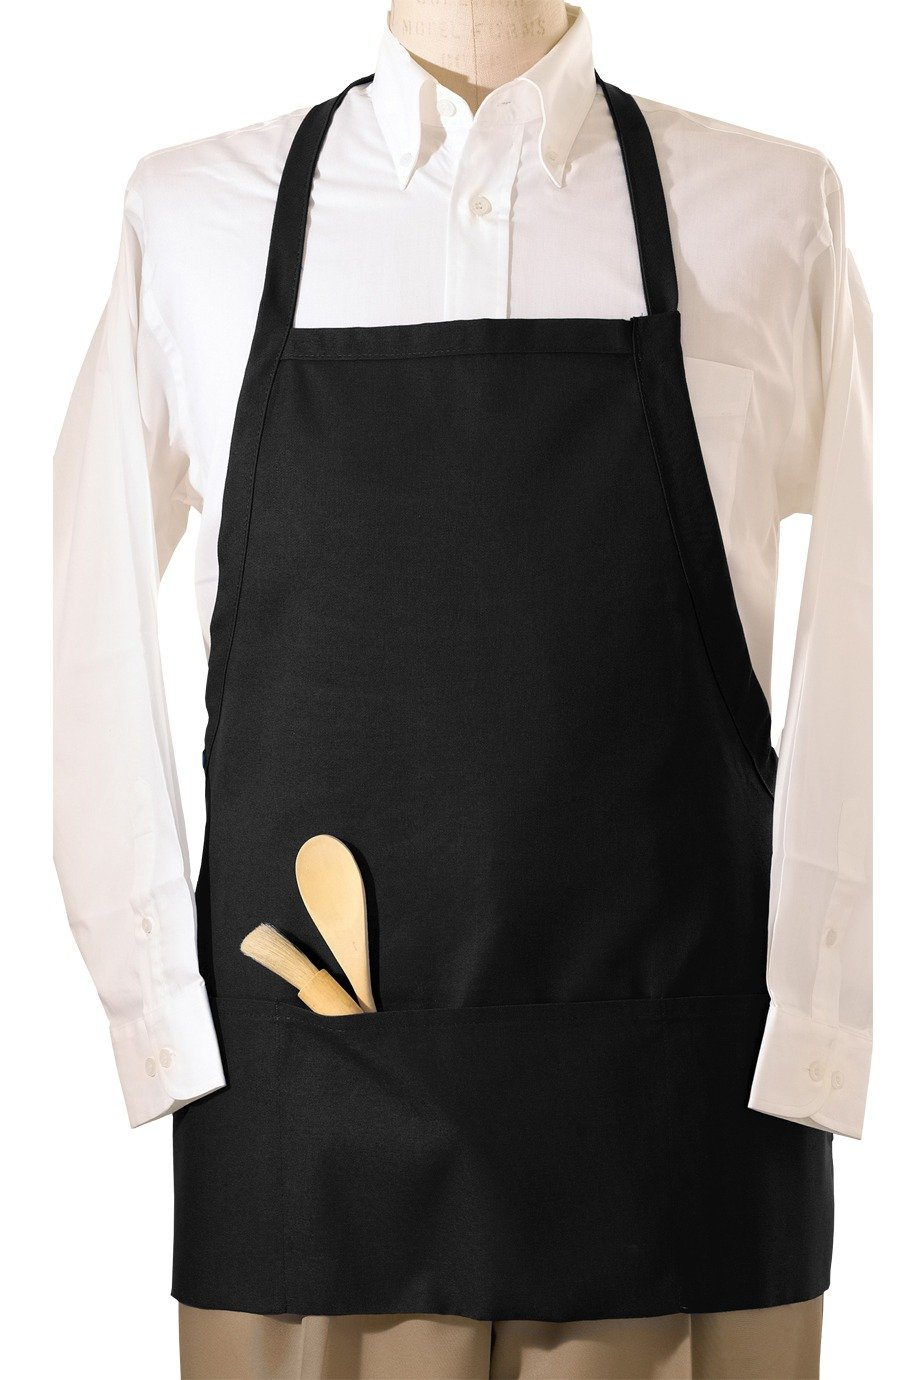 Black Bib E-Z Slide Adjustable Apron (3 Pockets)